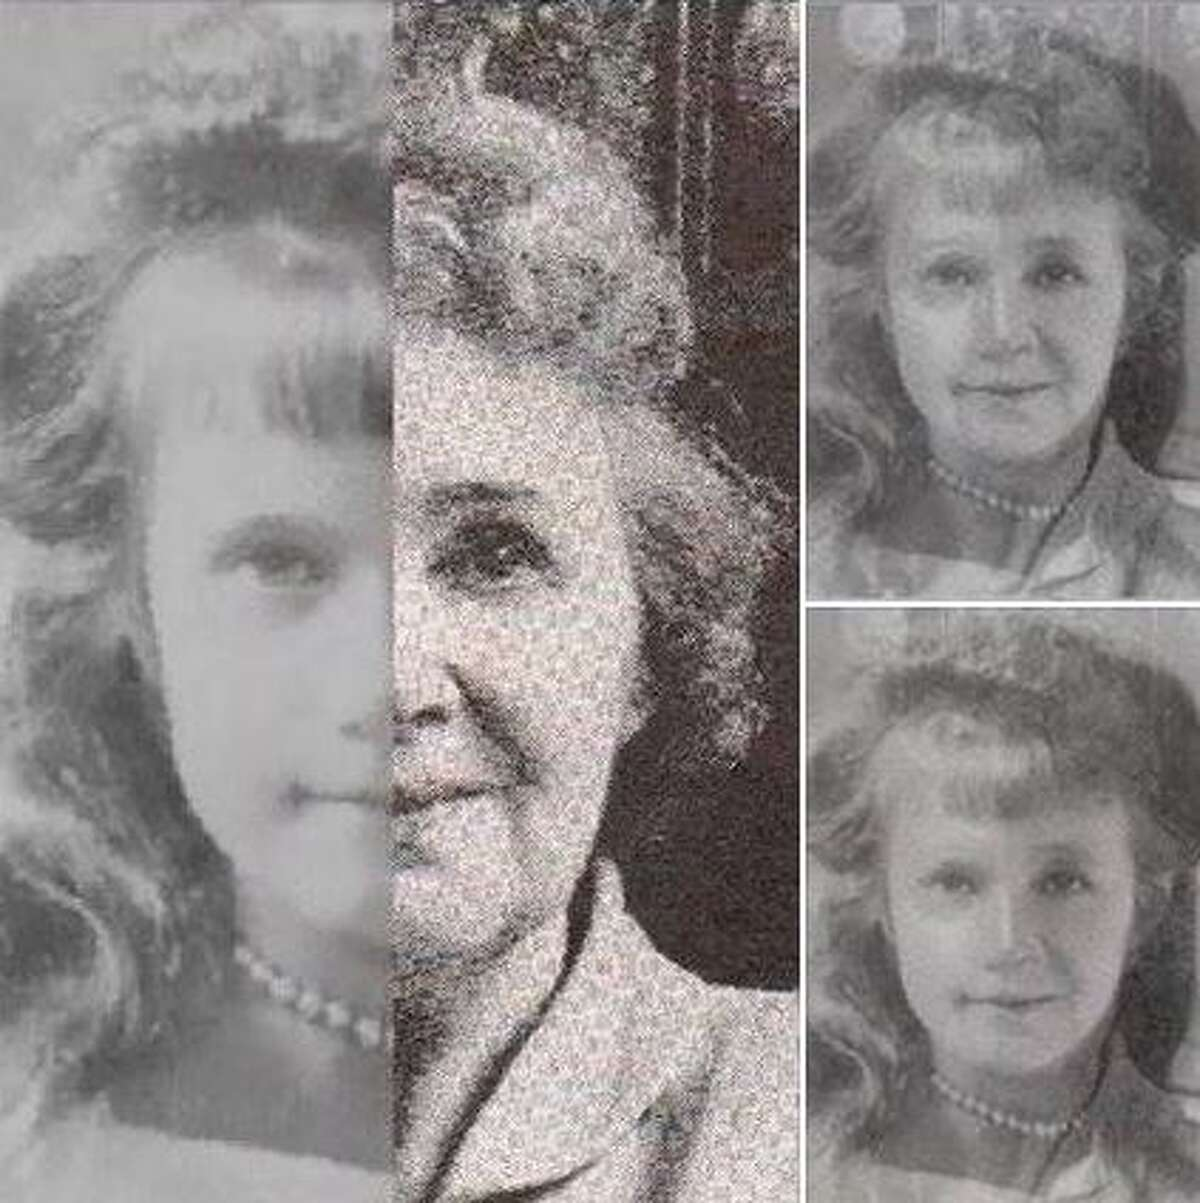 Facial recognition simulation of the real Anastasia as a girl and Smetisko at age 55 reveals similarities but not conclusive evidence of a match.